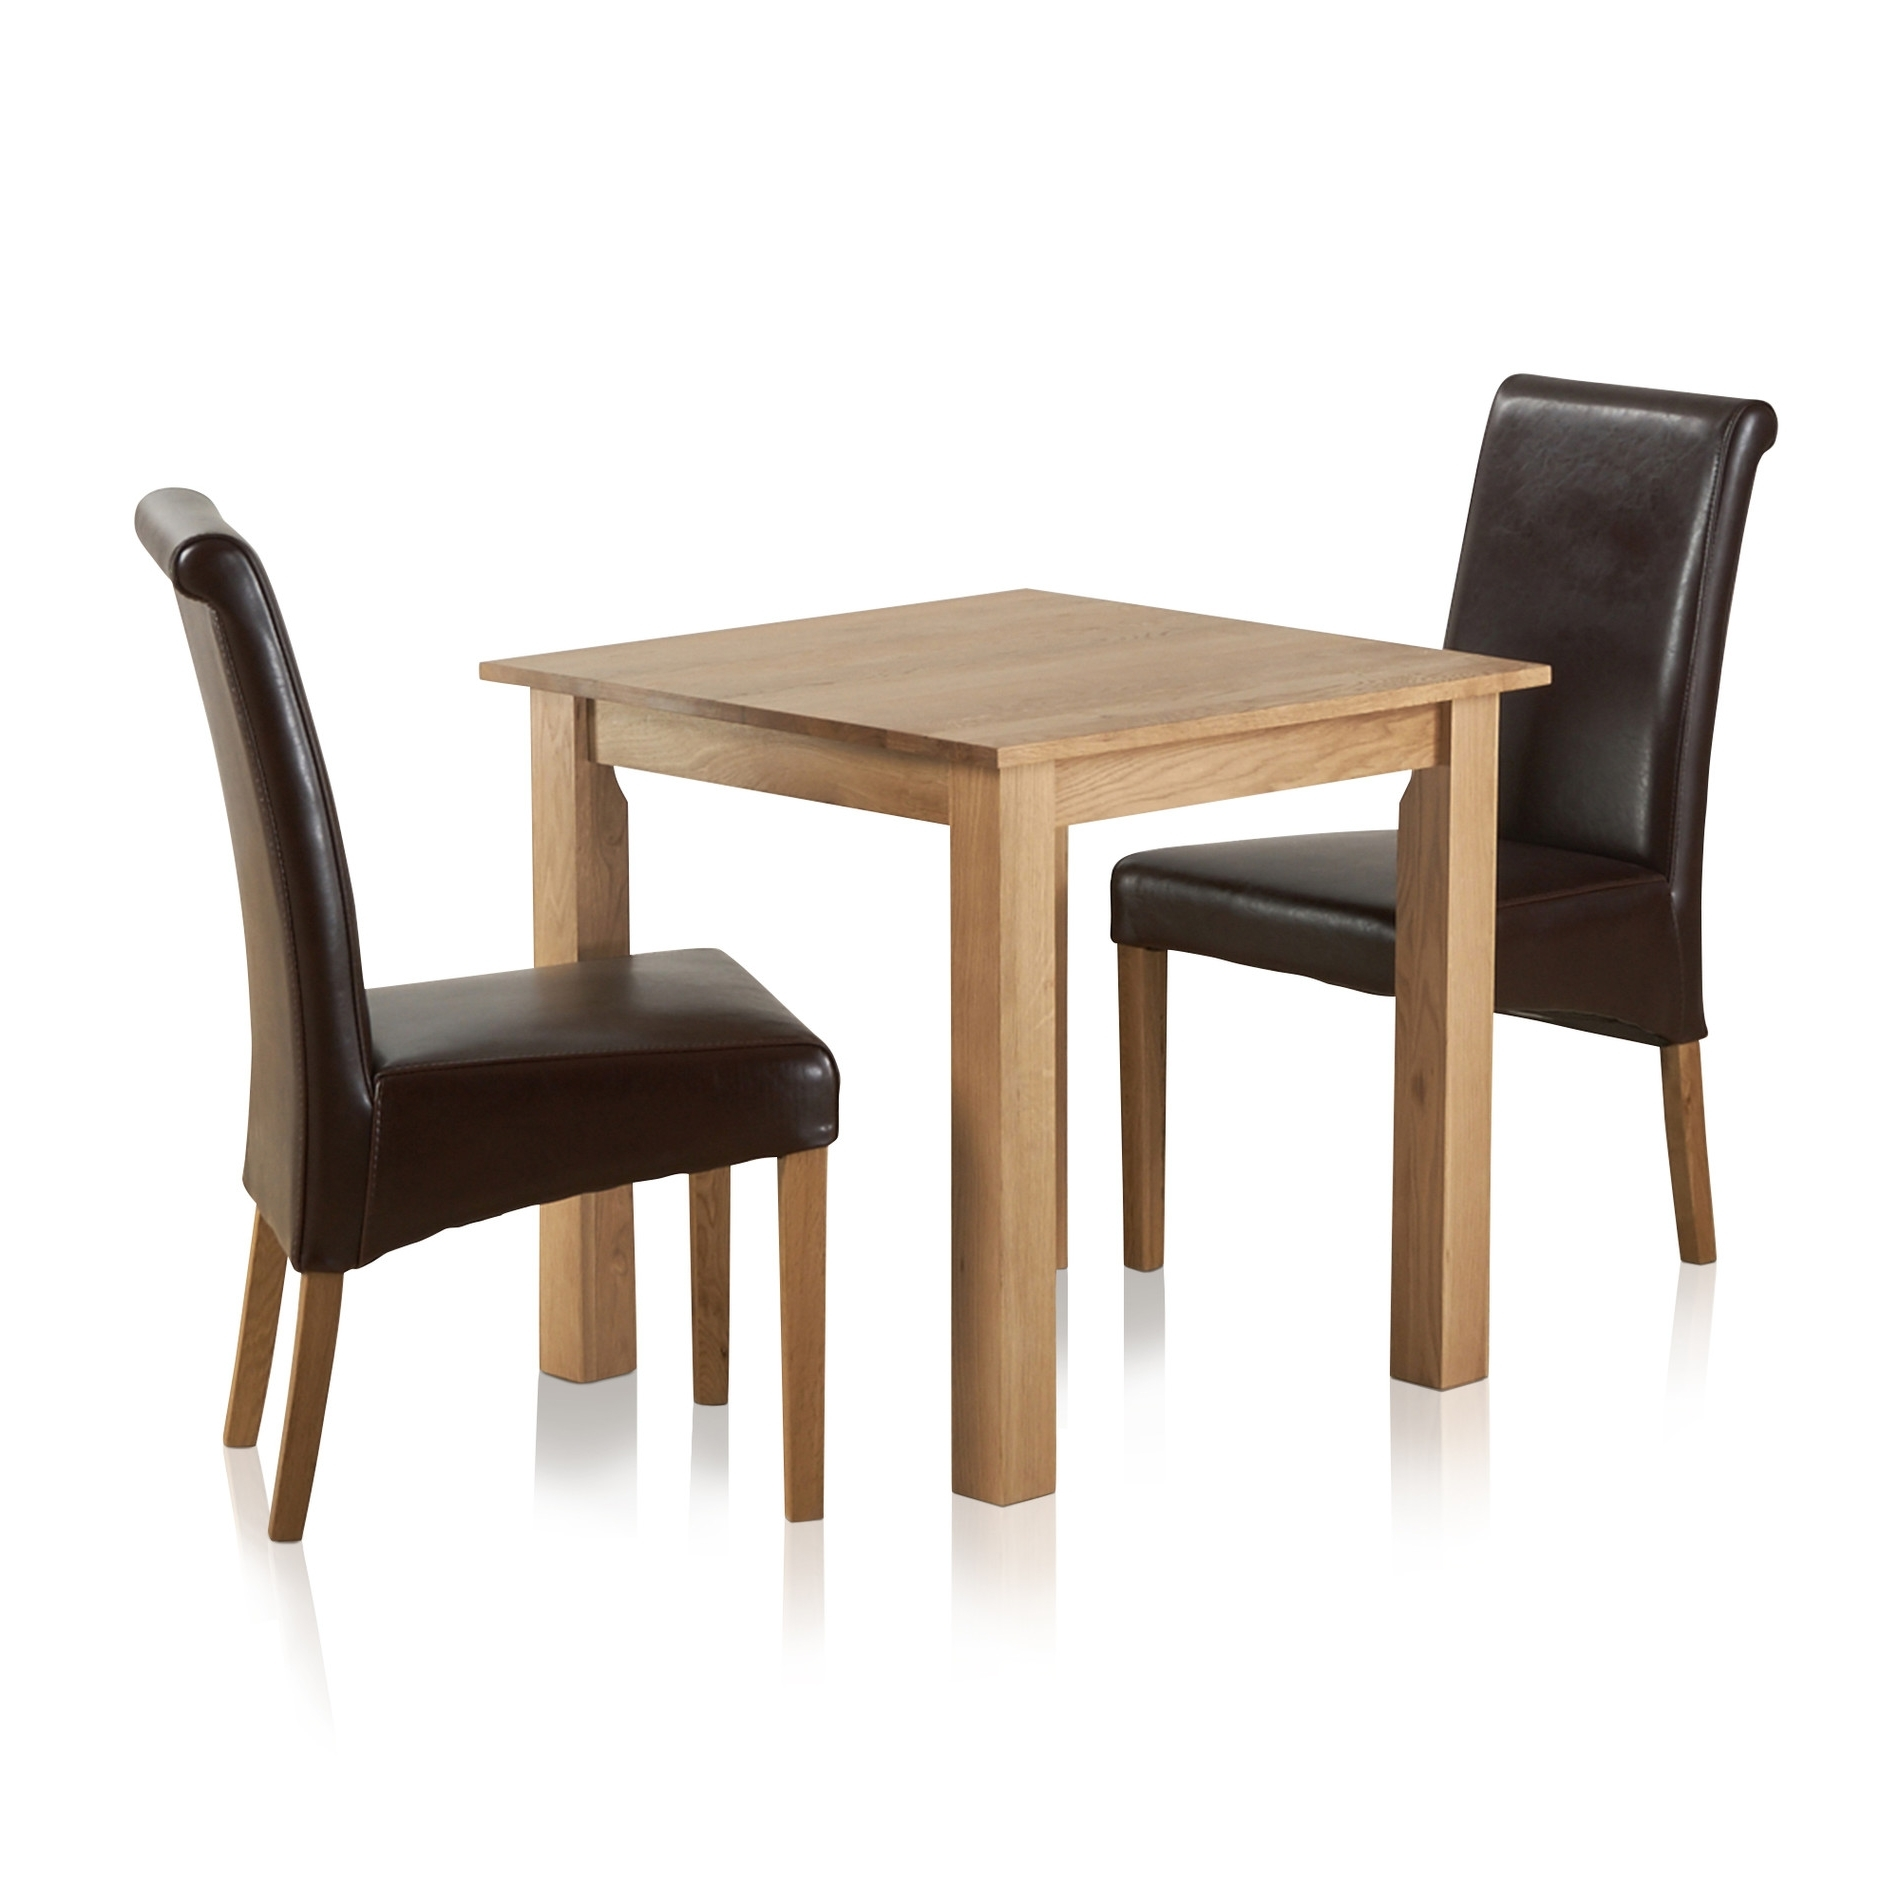 Next Hudson Dining Tables Regarding Newest Hudson Dining Set In Natural Oak – Table + 2 Leather Chairs (View 22 of 25)